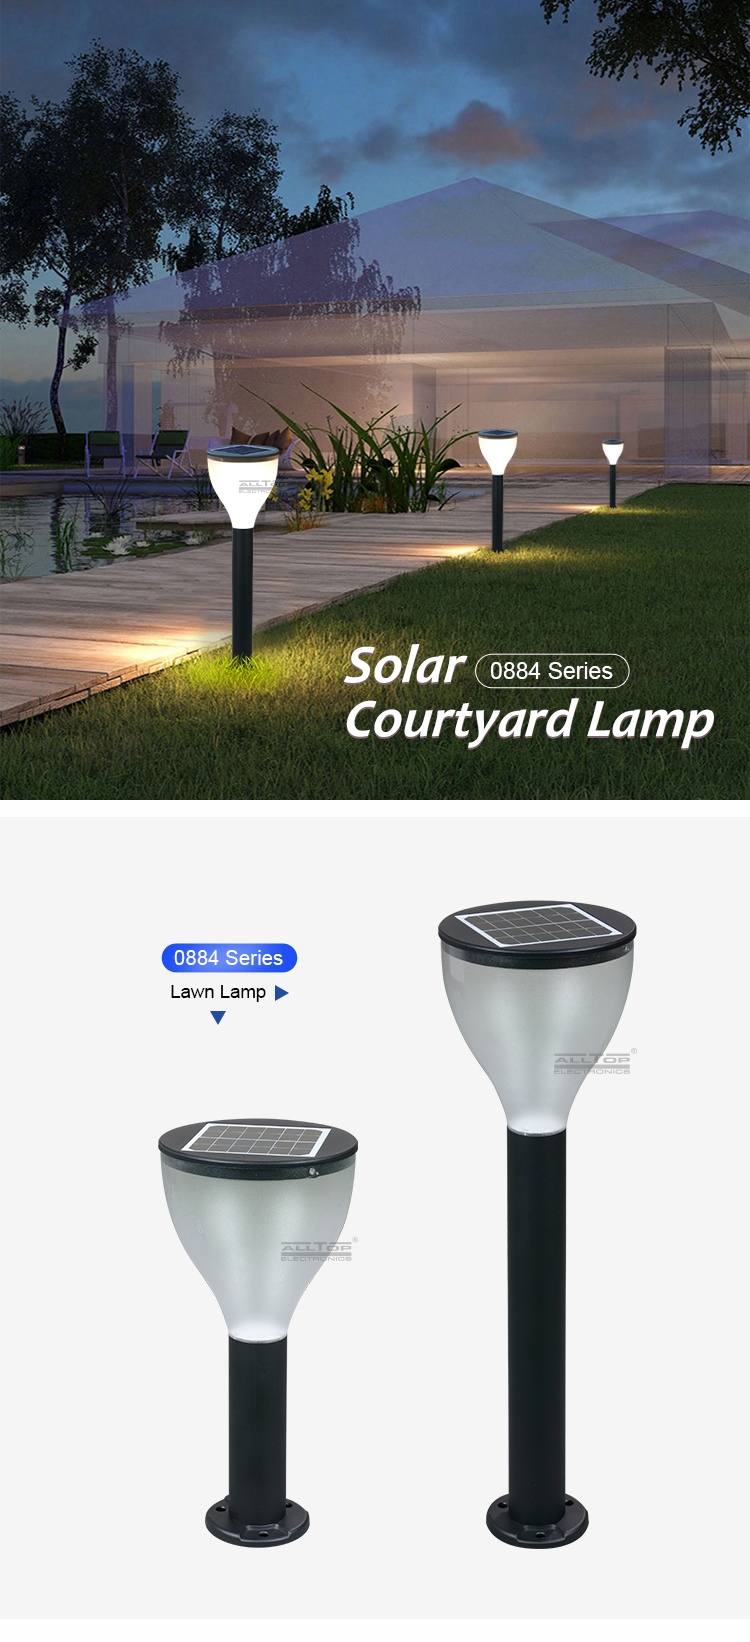 ALLTOP intergrated waterproof ip65 outdoor lighting all in one 3w solar led garden light price